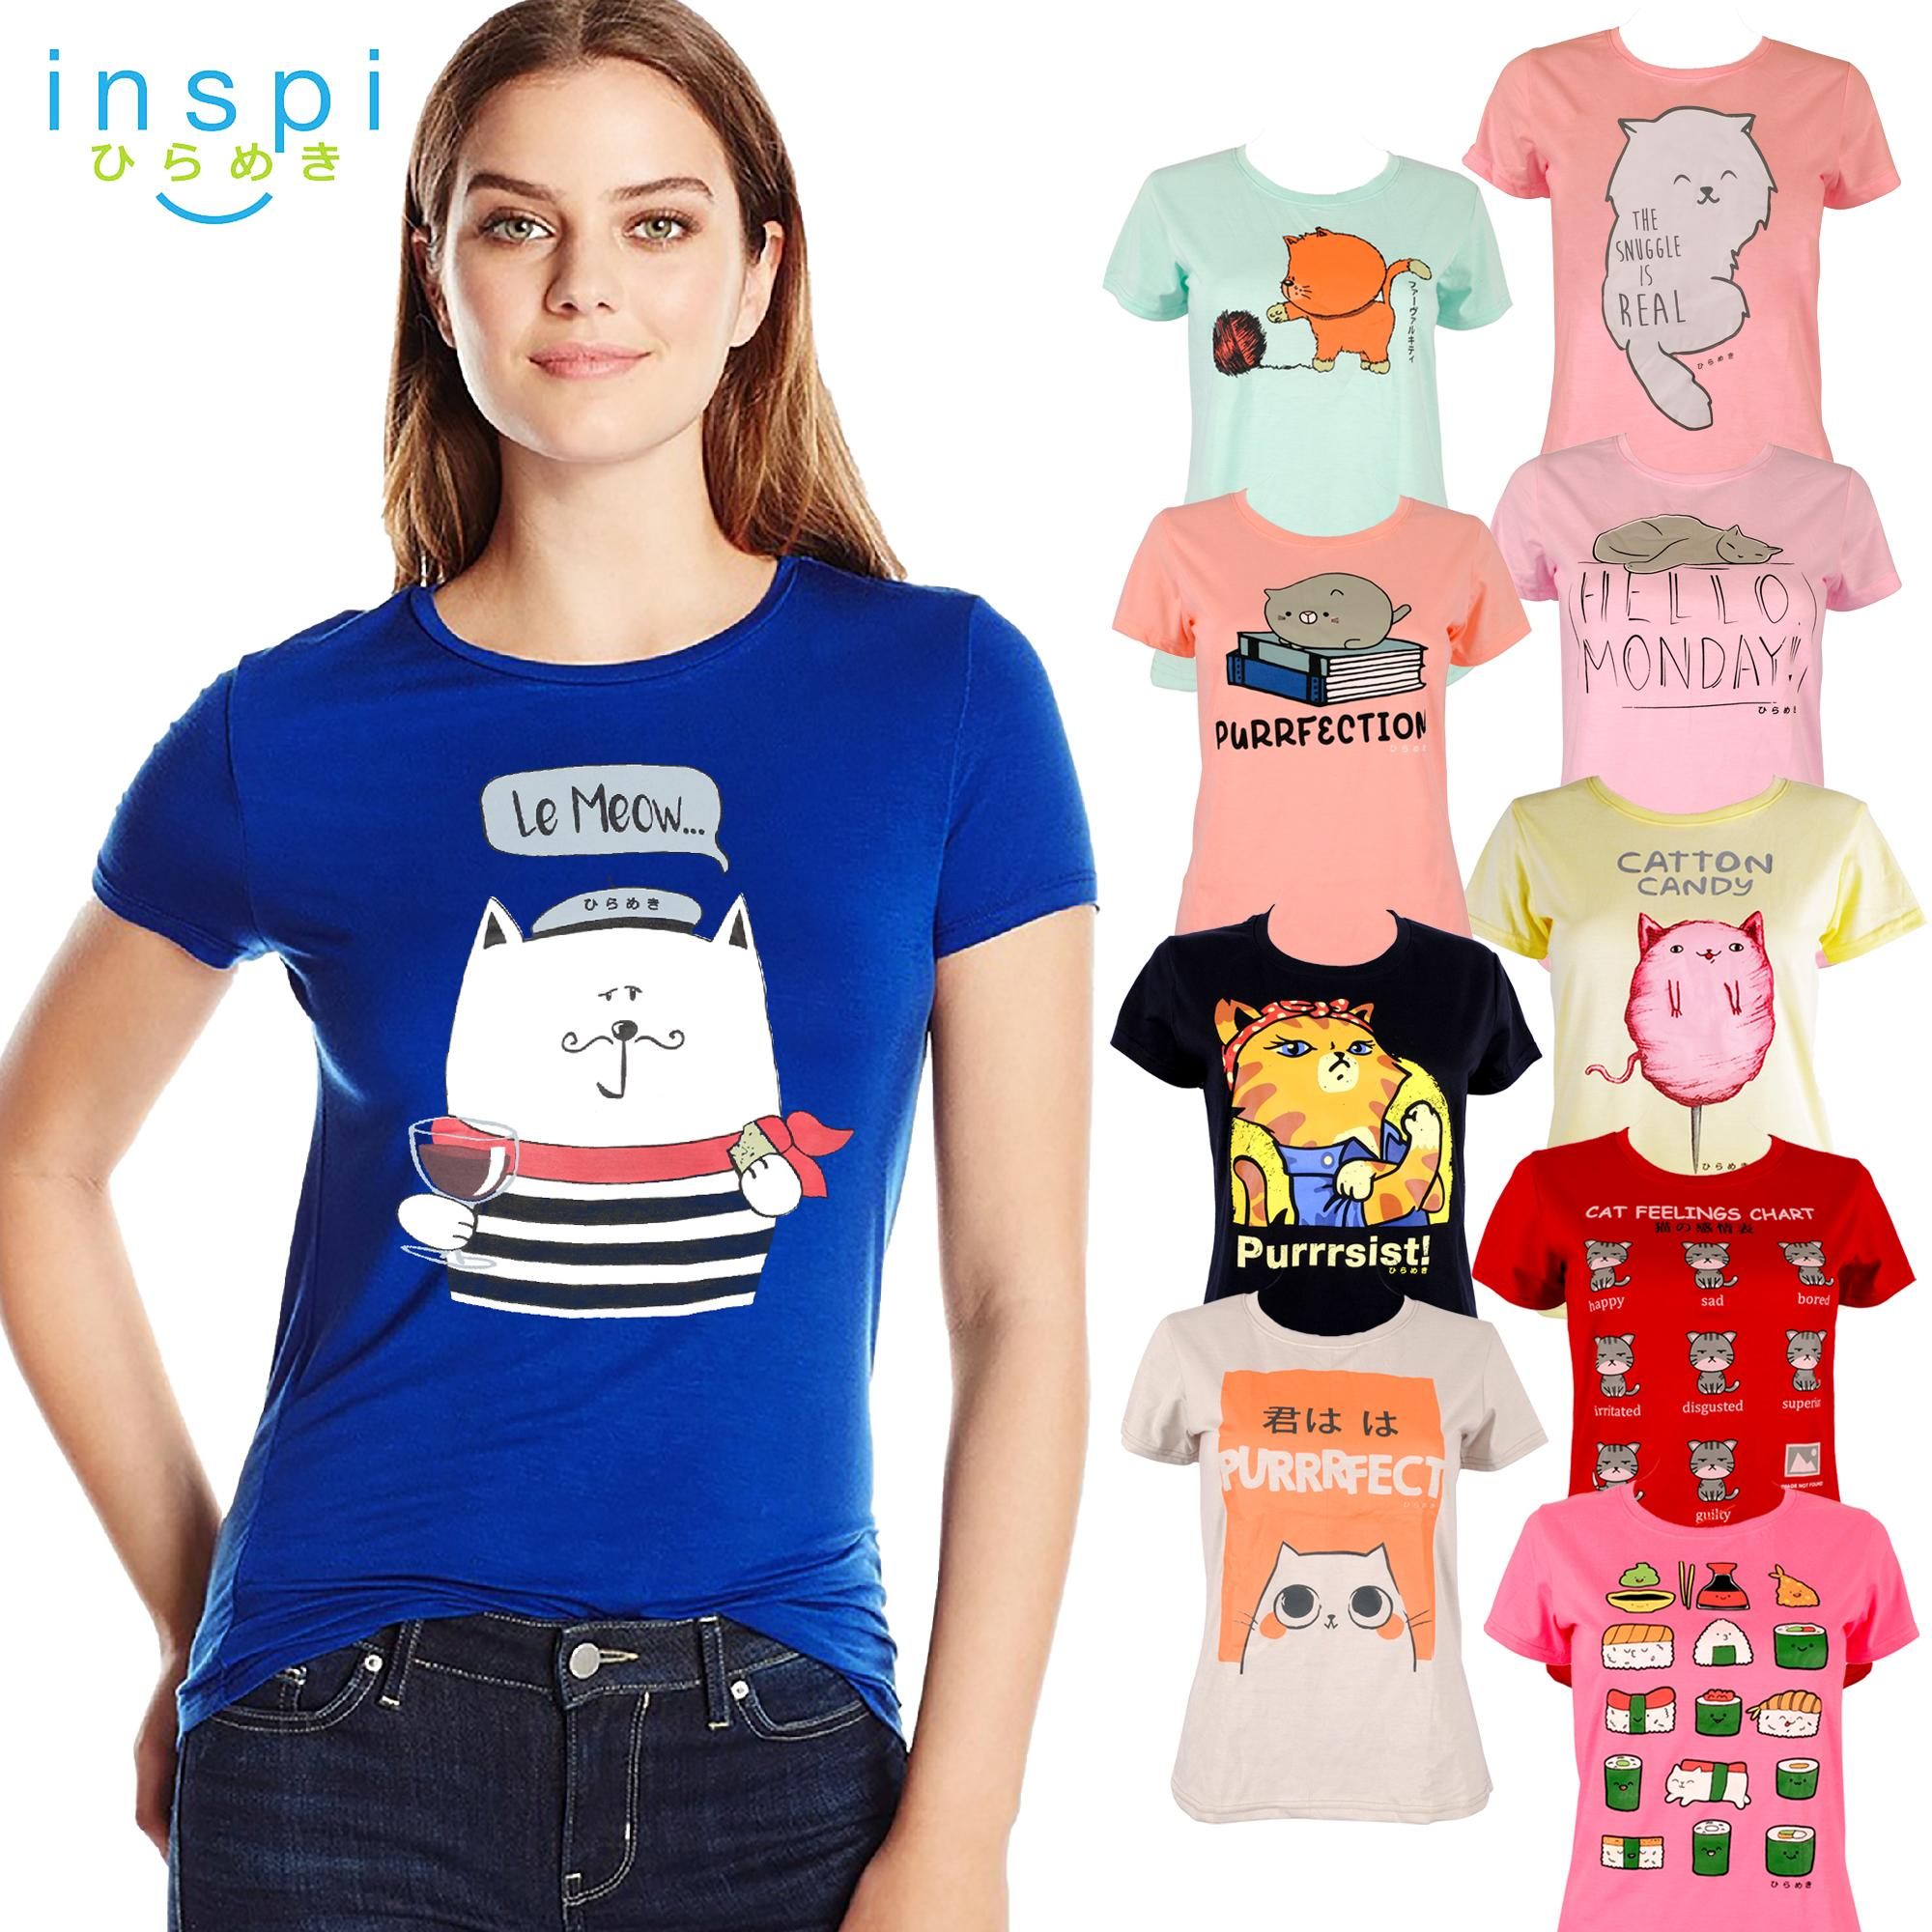 639f89d4f41f INSPI Tees Ladies Neko Collection tshirt printed graphic tee Ladies t shirt  shirts women tshirts for